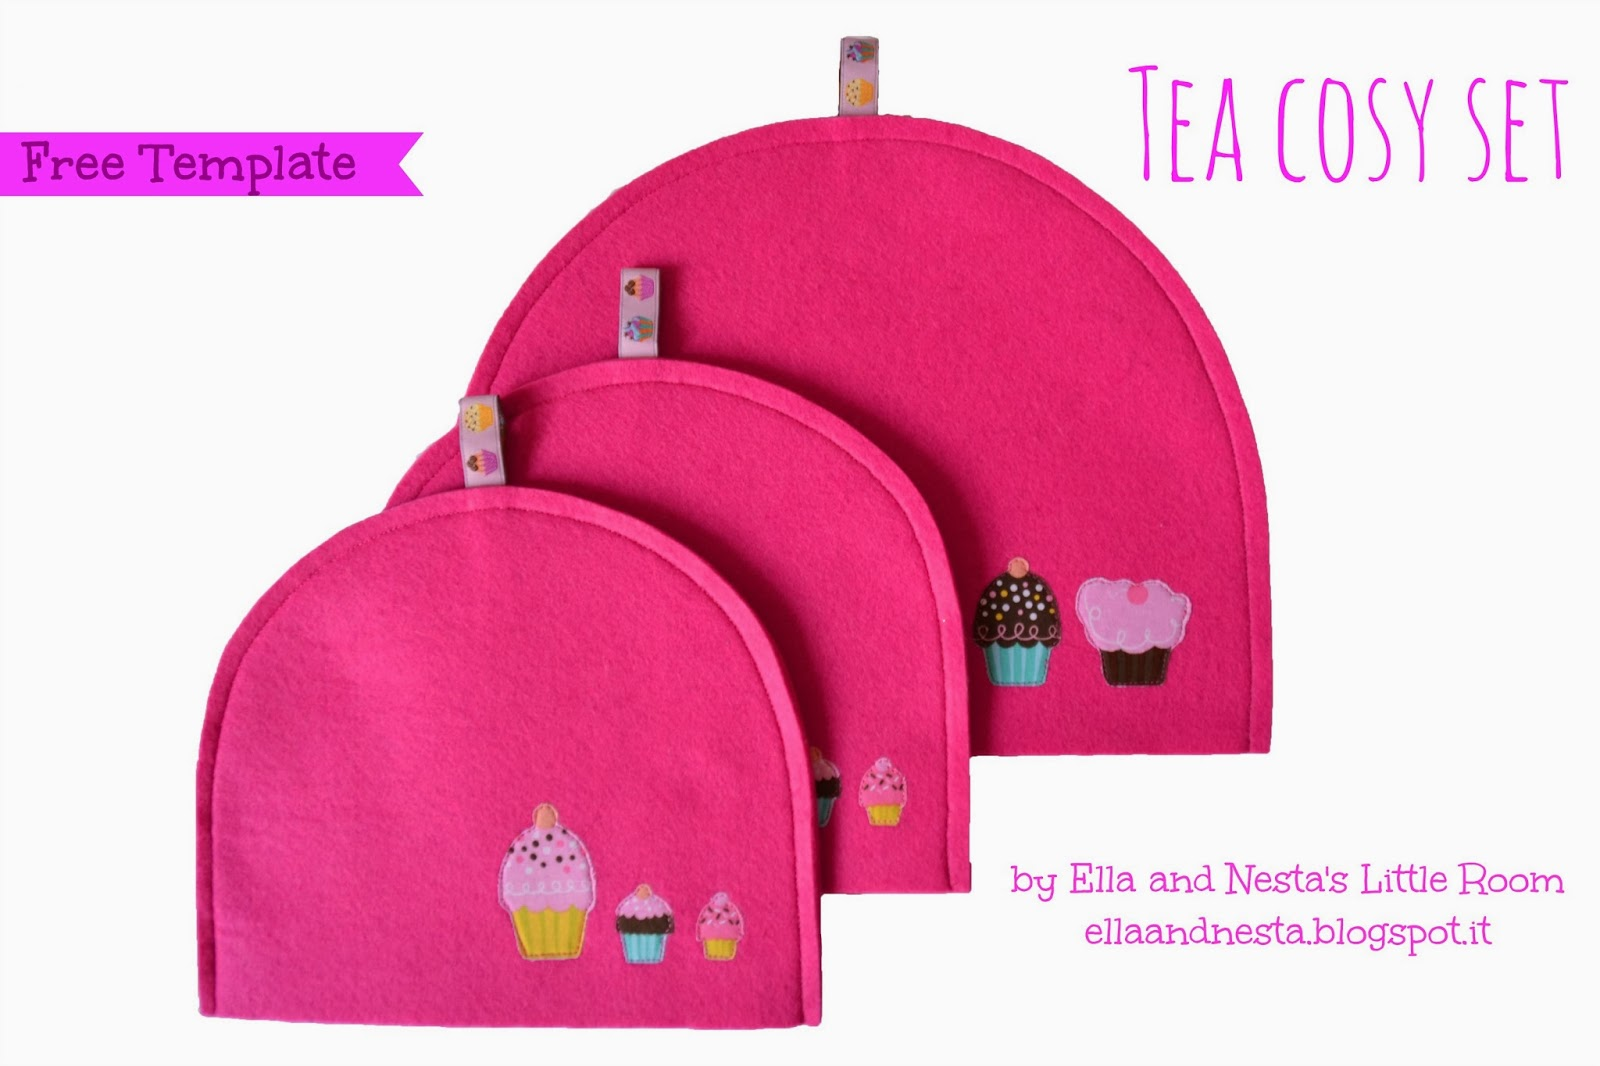 Tea cozy set image_pdf tea cozy pattern template free